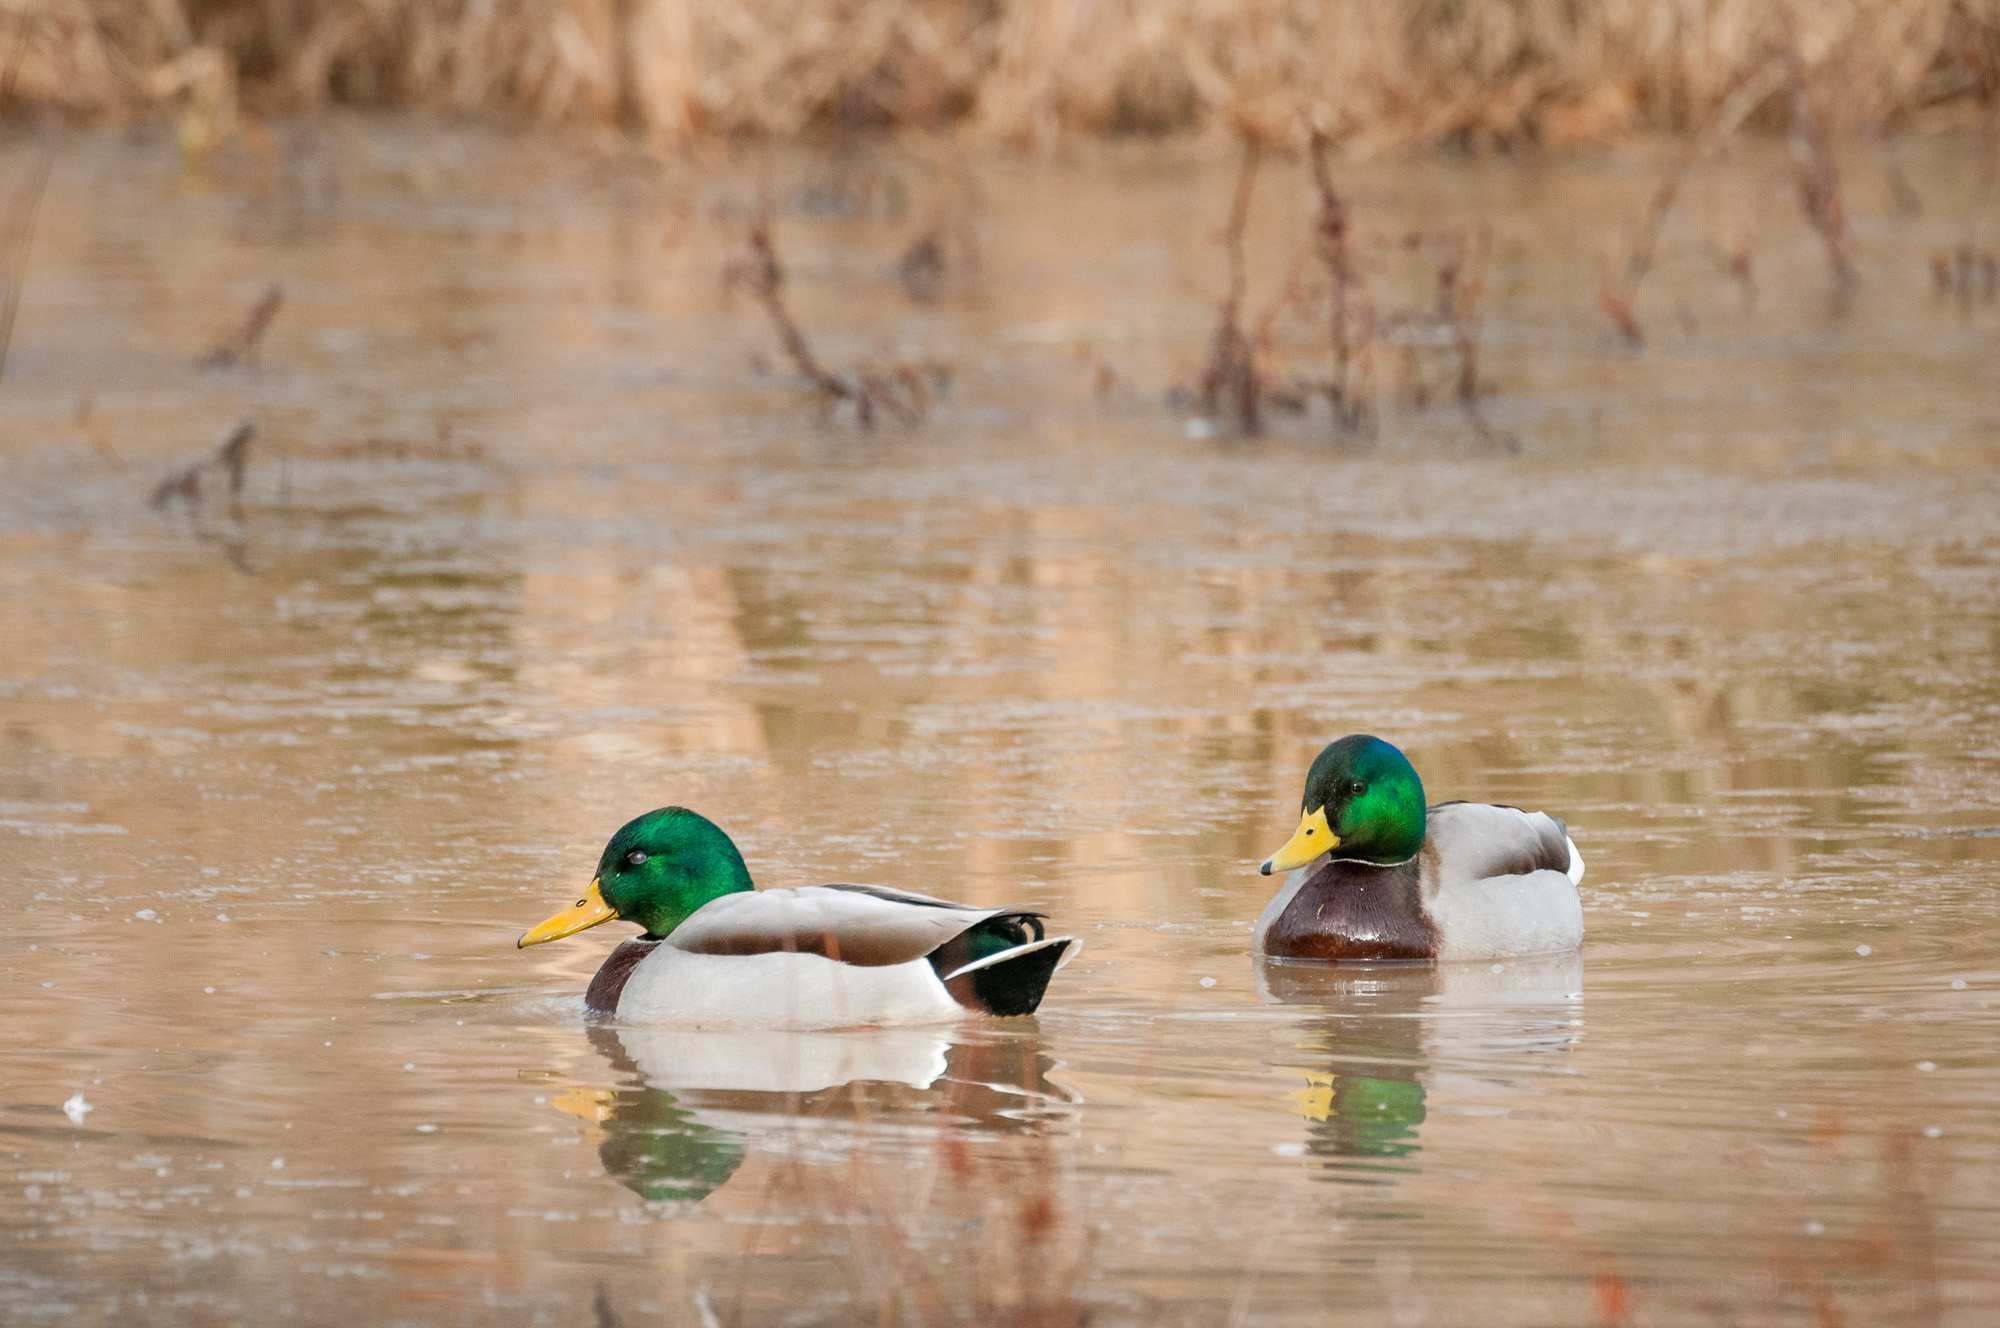 A pair of male mallards. Click on the image to see a larger view, then look closely at the left mallard. It has closed its  nictitating membrane  over its eye. The mallard to the right has its eyes wide open.